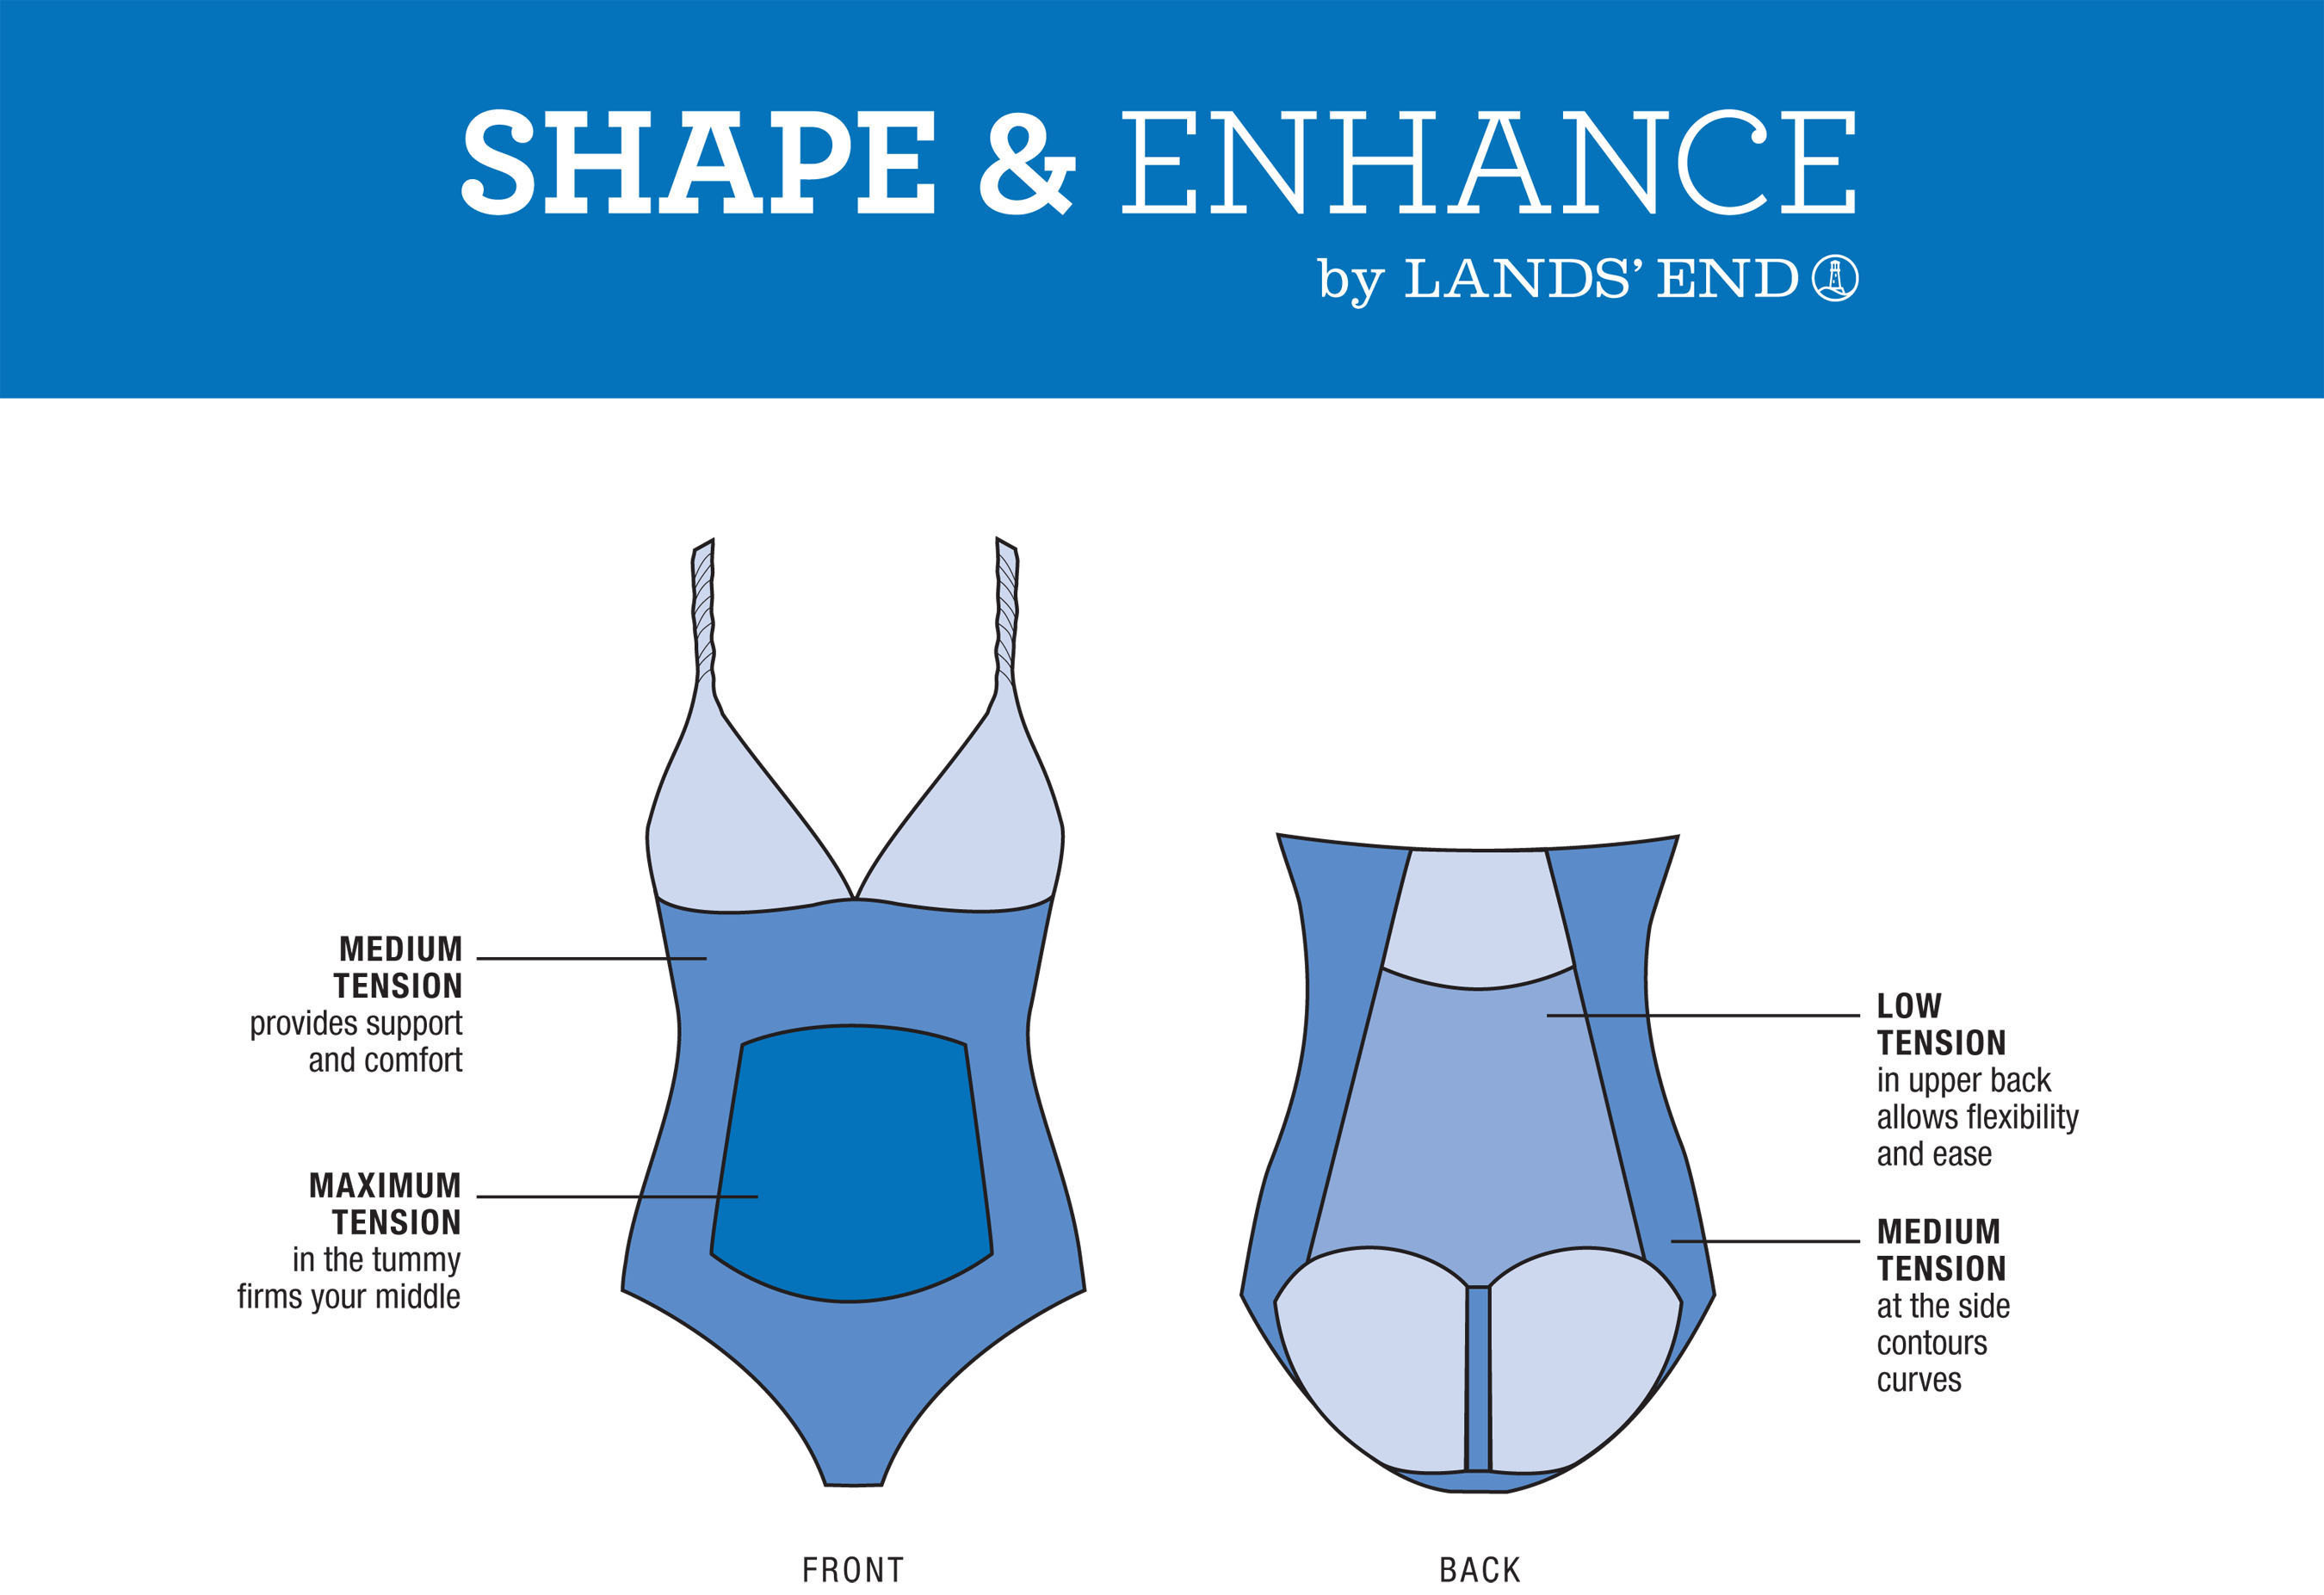 Lands' End Exclusive Shape & Enhance Swimwear Offers Various Levels of Targeted Shaping.  (PRNewsFoto/Lands' End)